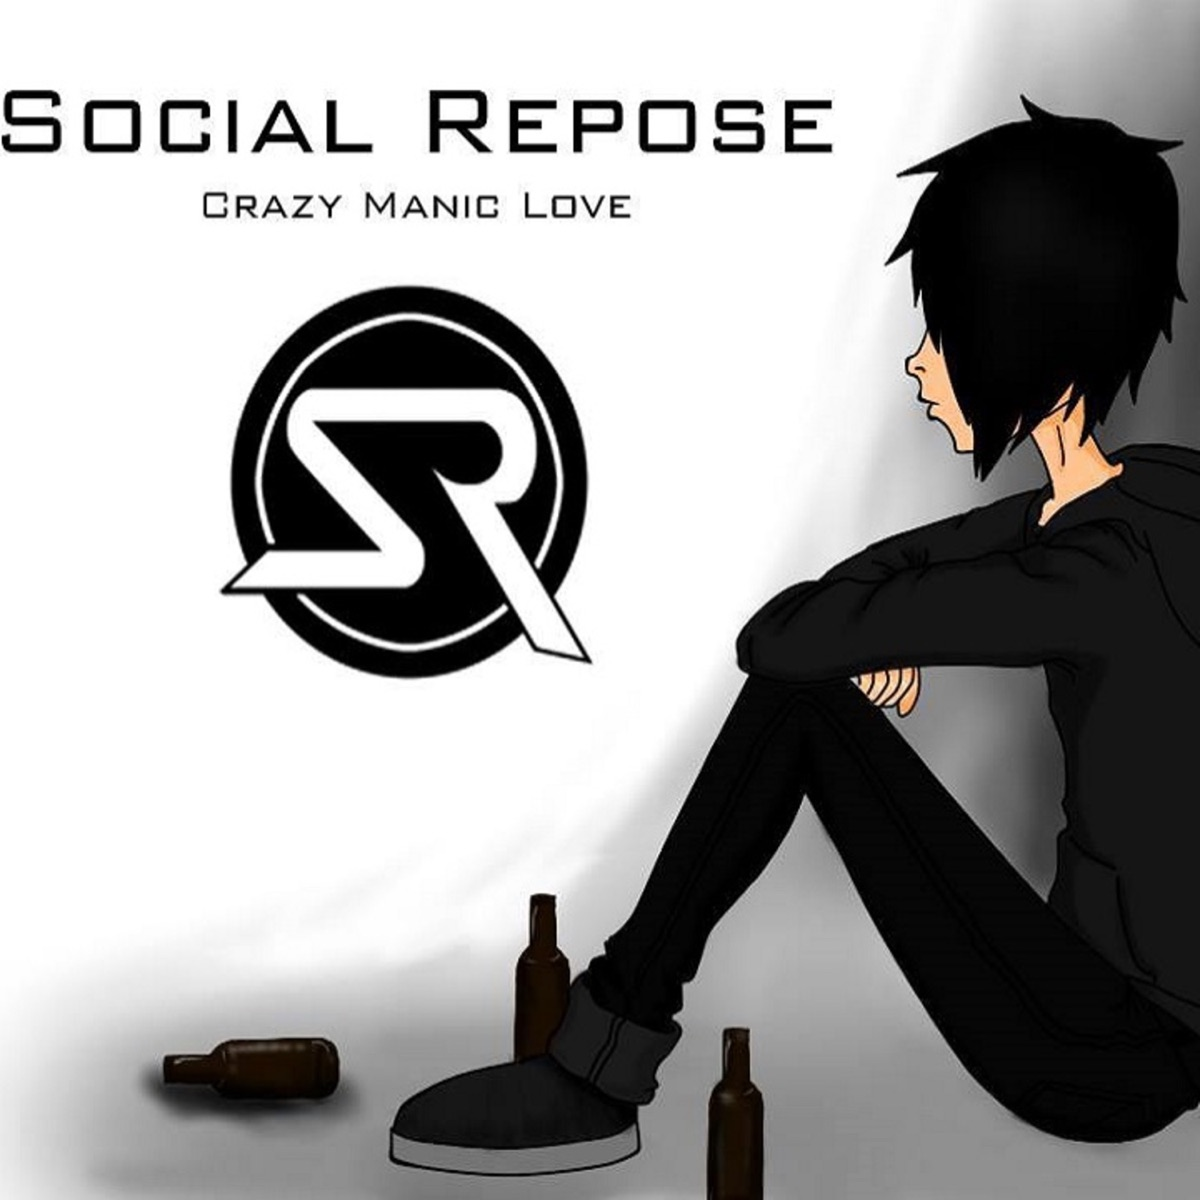 Crazy Manic Love - EP Social Repose CD cover